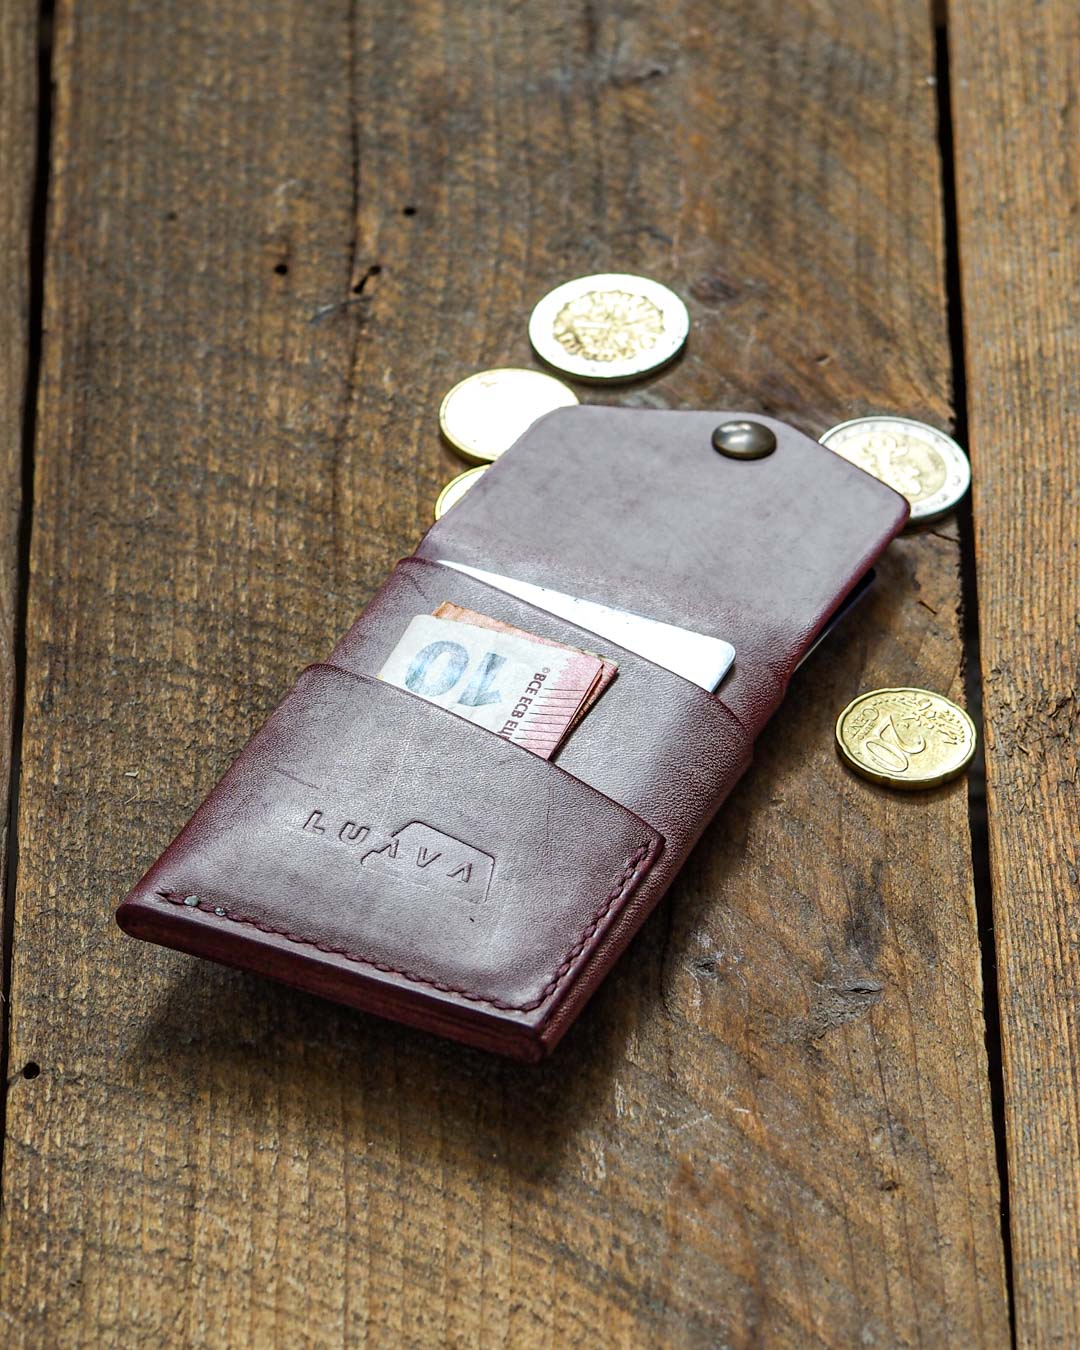 Luava handcrafted leather overfold wallet ghost burgundy conceria la bretagna cardholder card holder handmade in finland back open in use